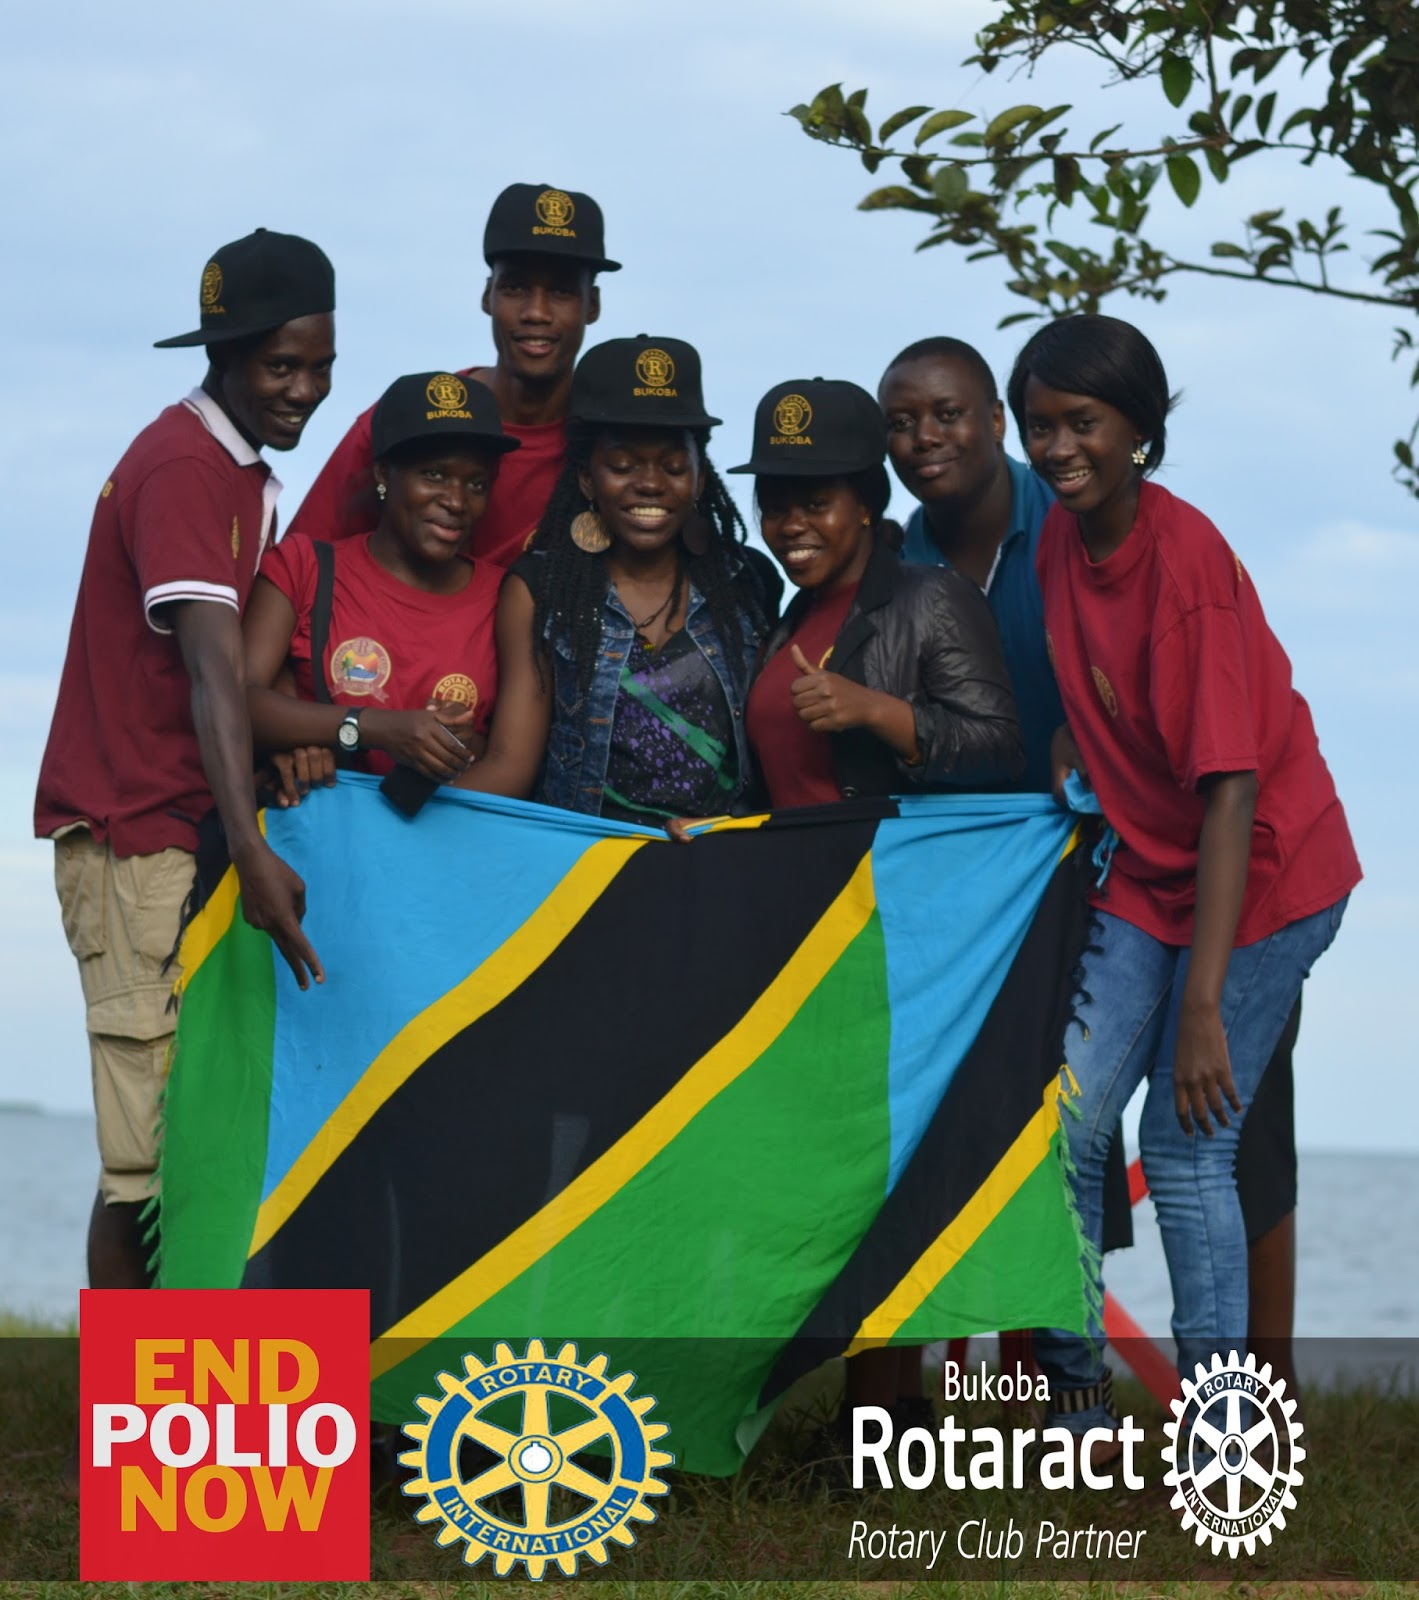 essay on polio eradication